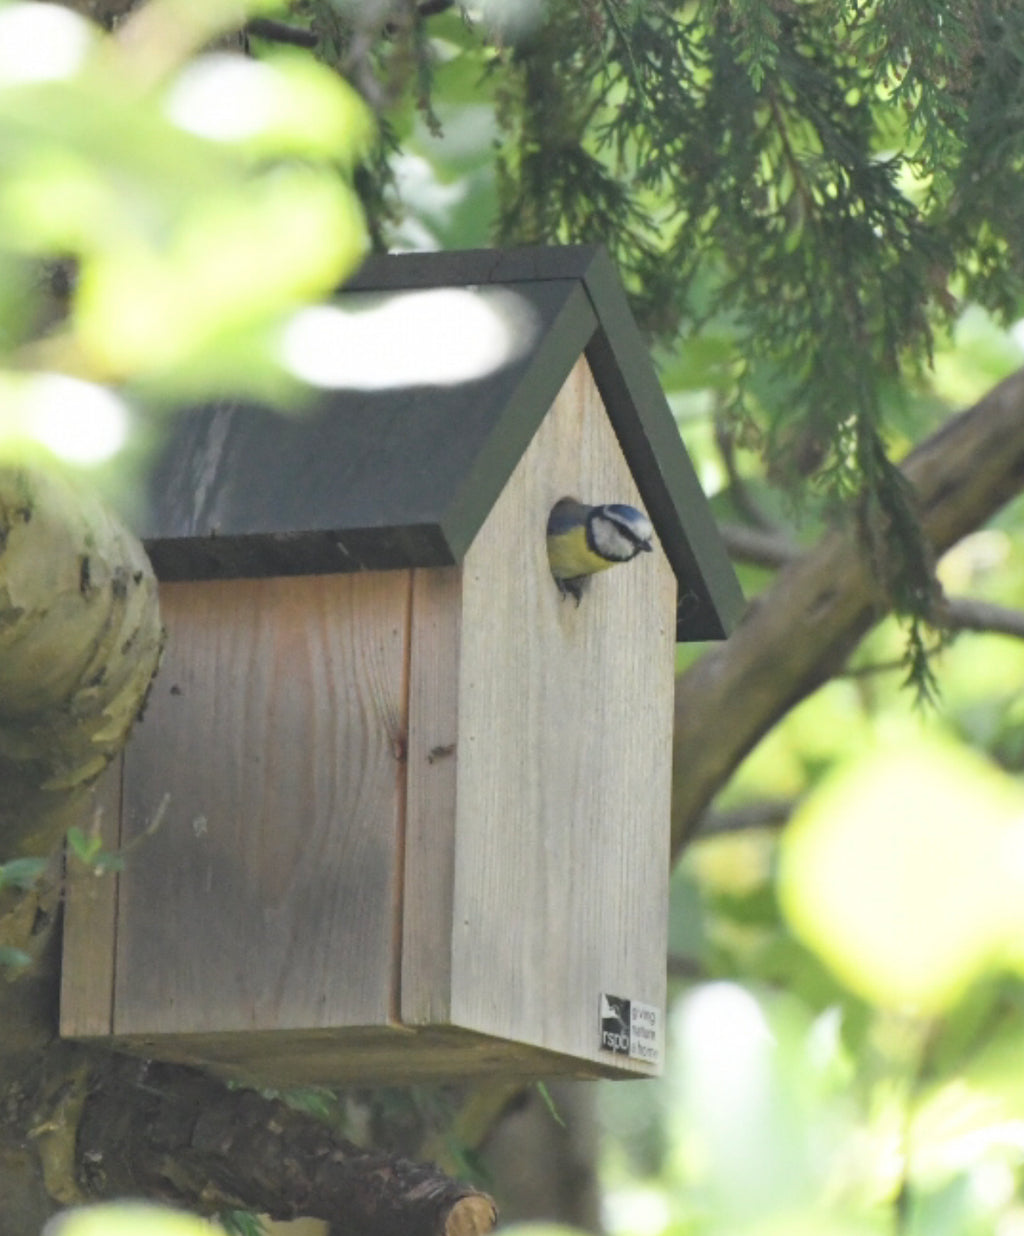 How to Choose a Bird Box